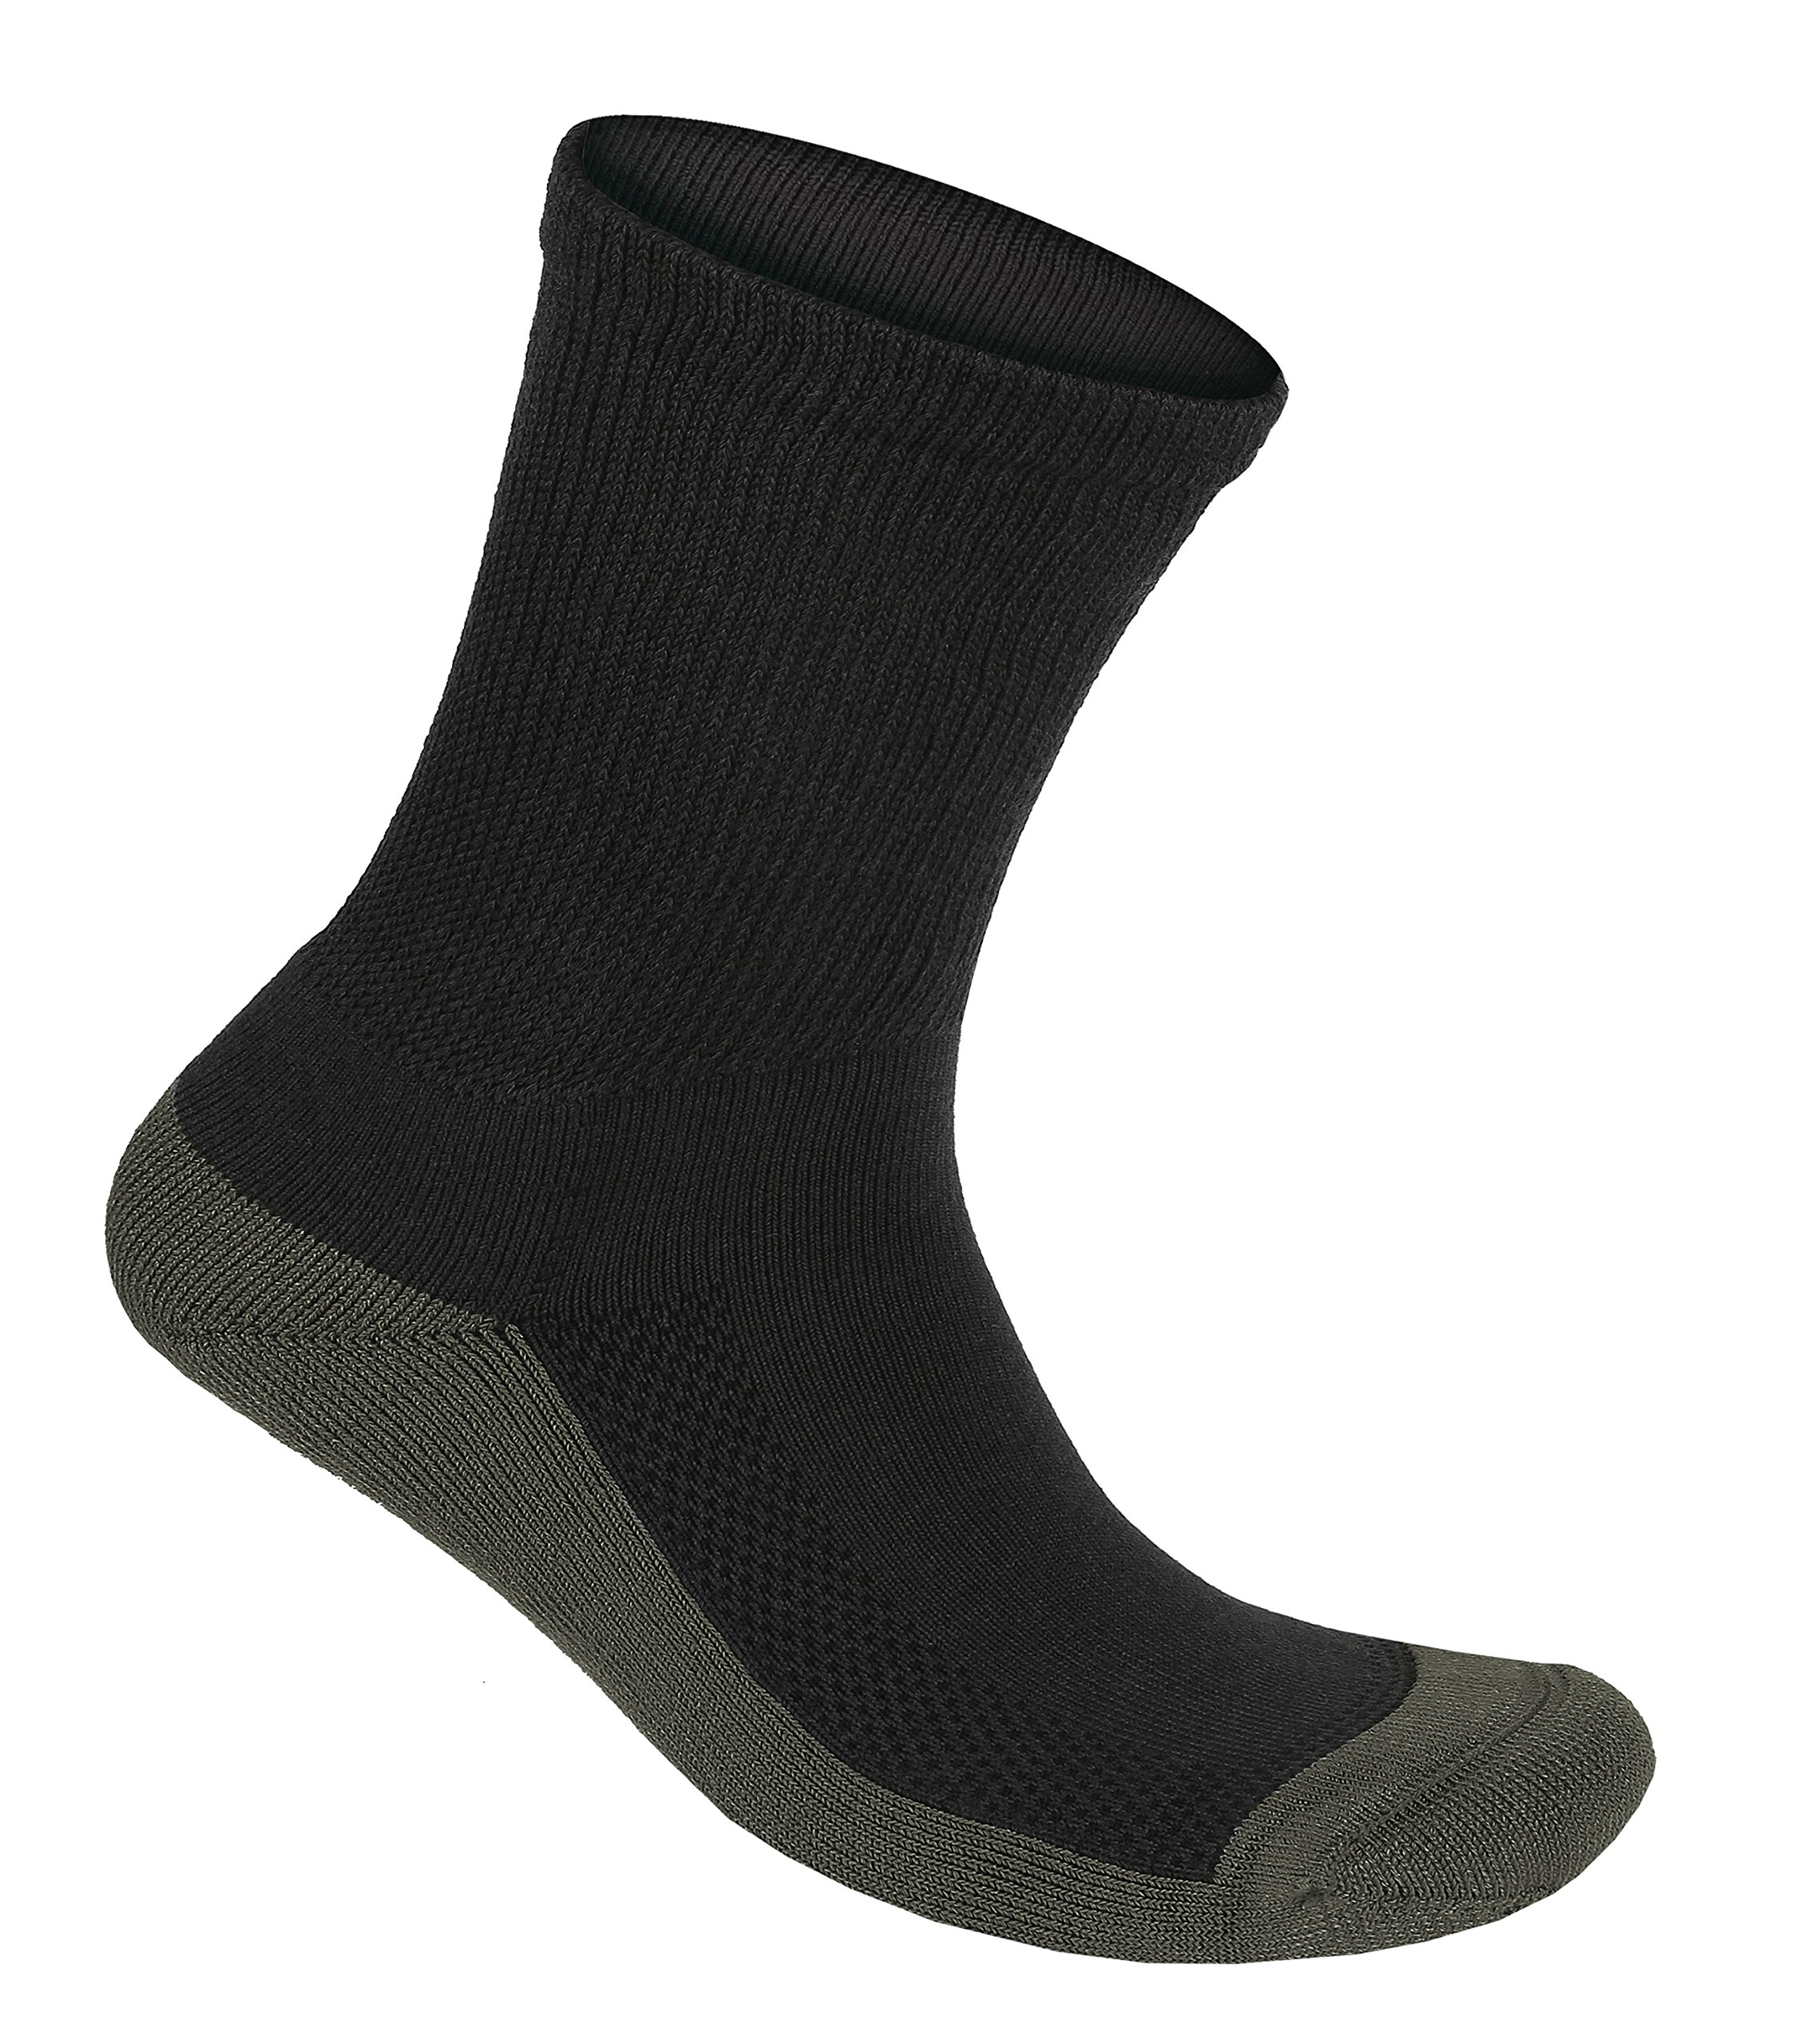 Orthofeet Padded Sole Non-Binding Non-Constrictive Circulation Seam Free Bamboo Socks Charcoal, 3 Pack Extra Large